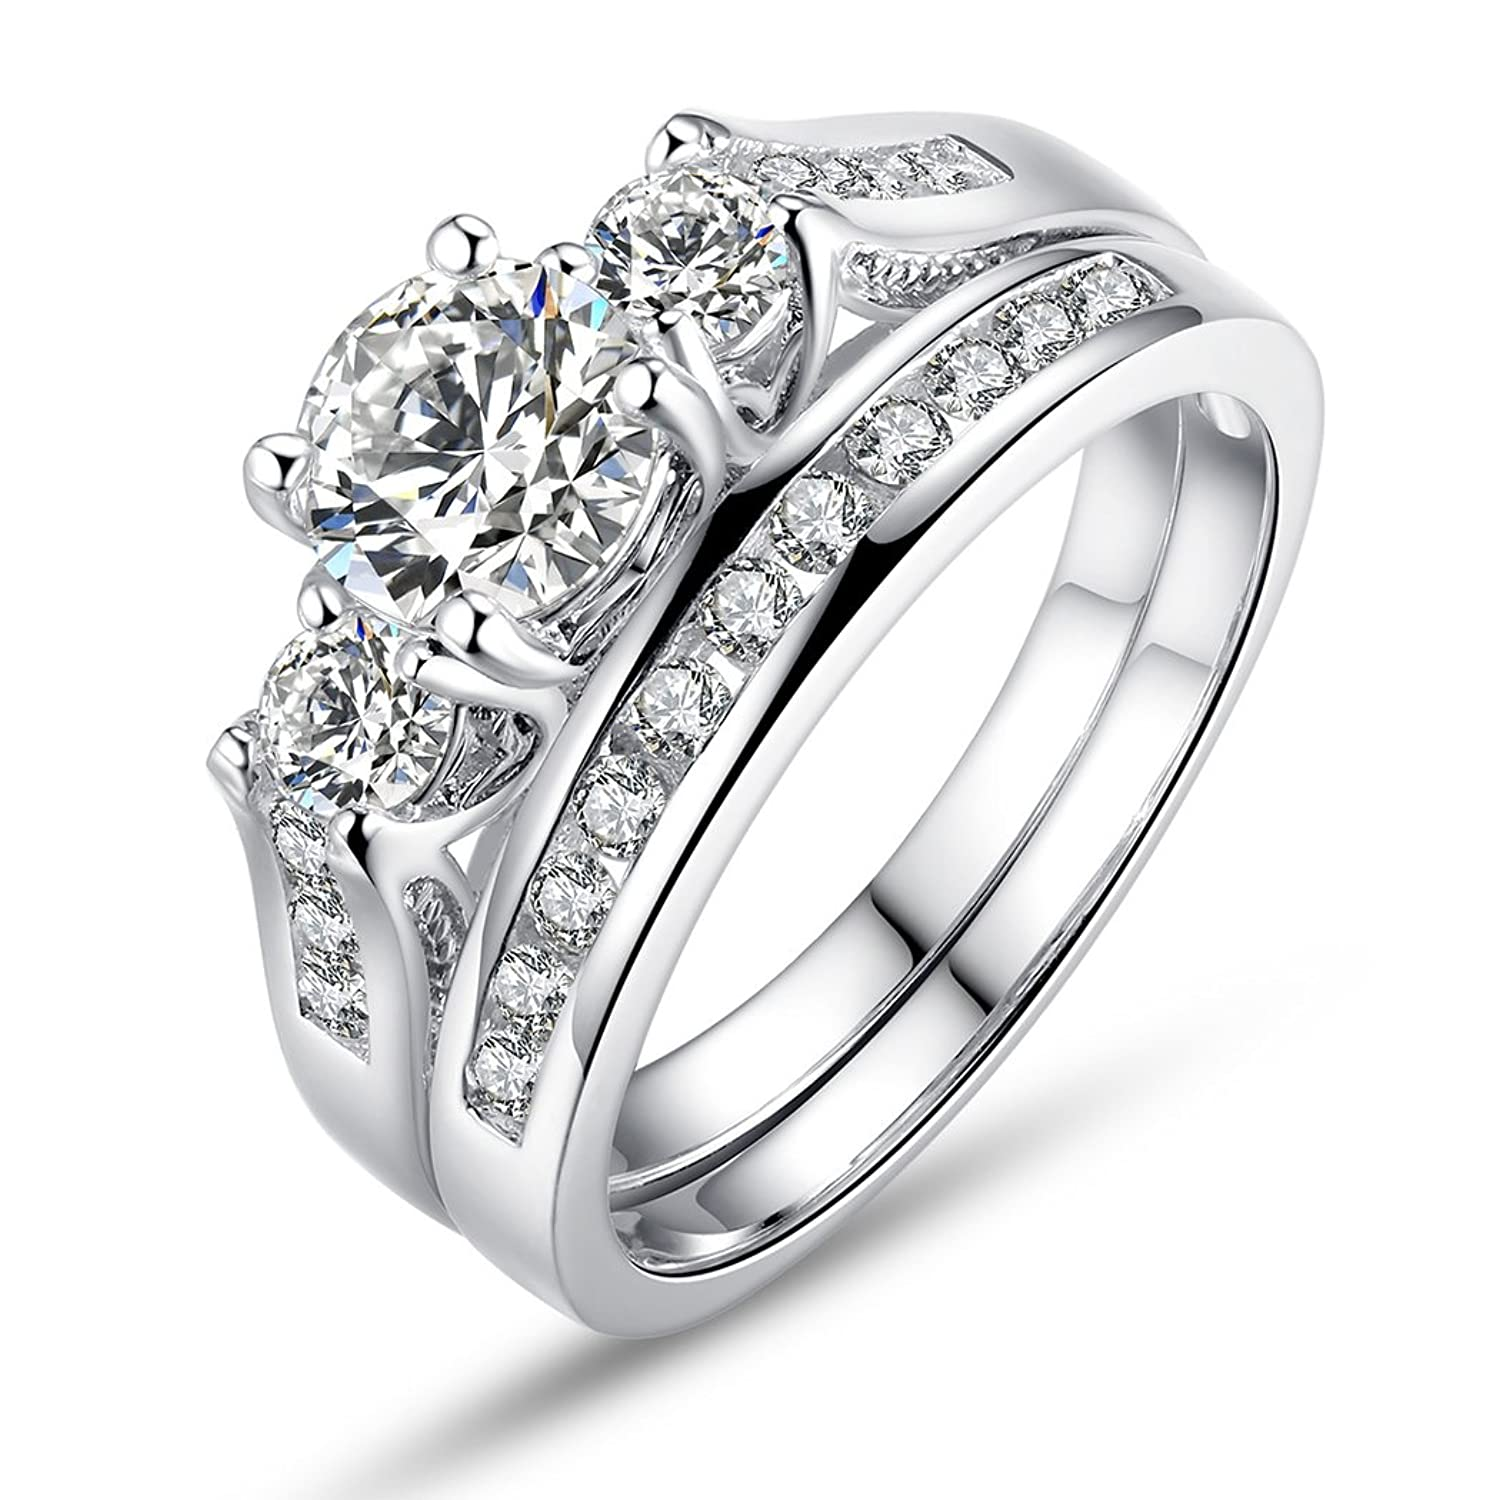 cz ring round cut vintage wedding engagement bling jewelry rings set